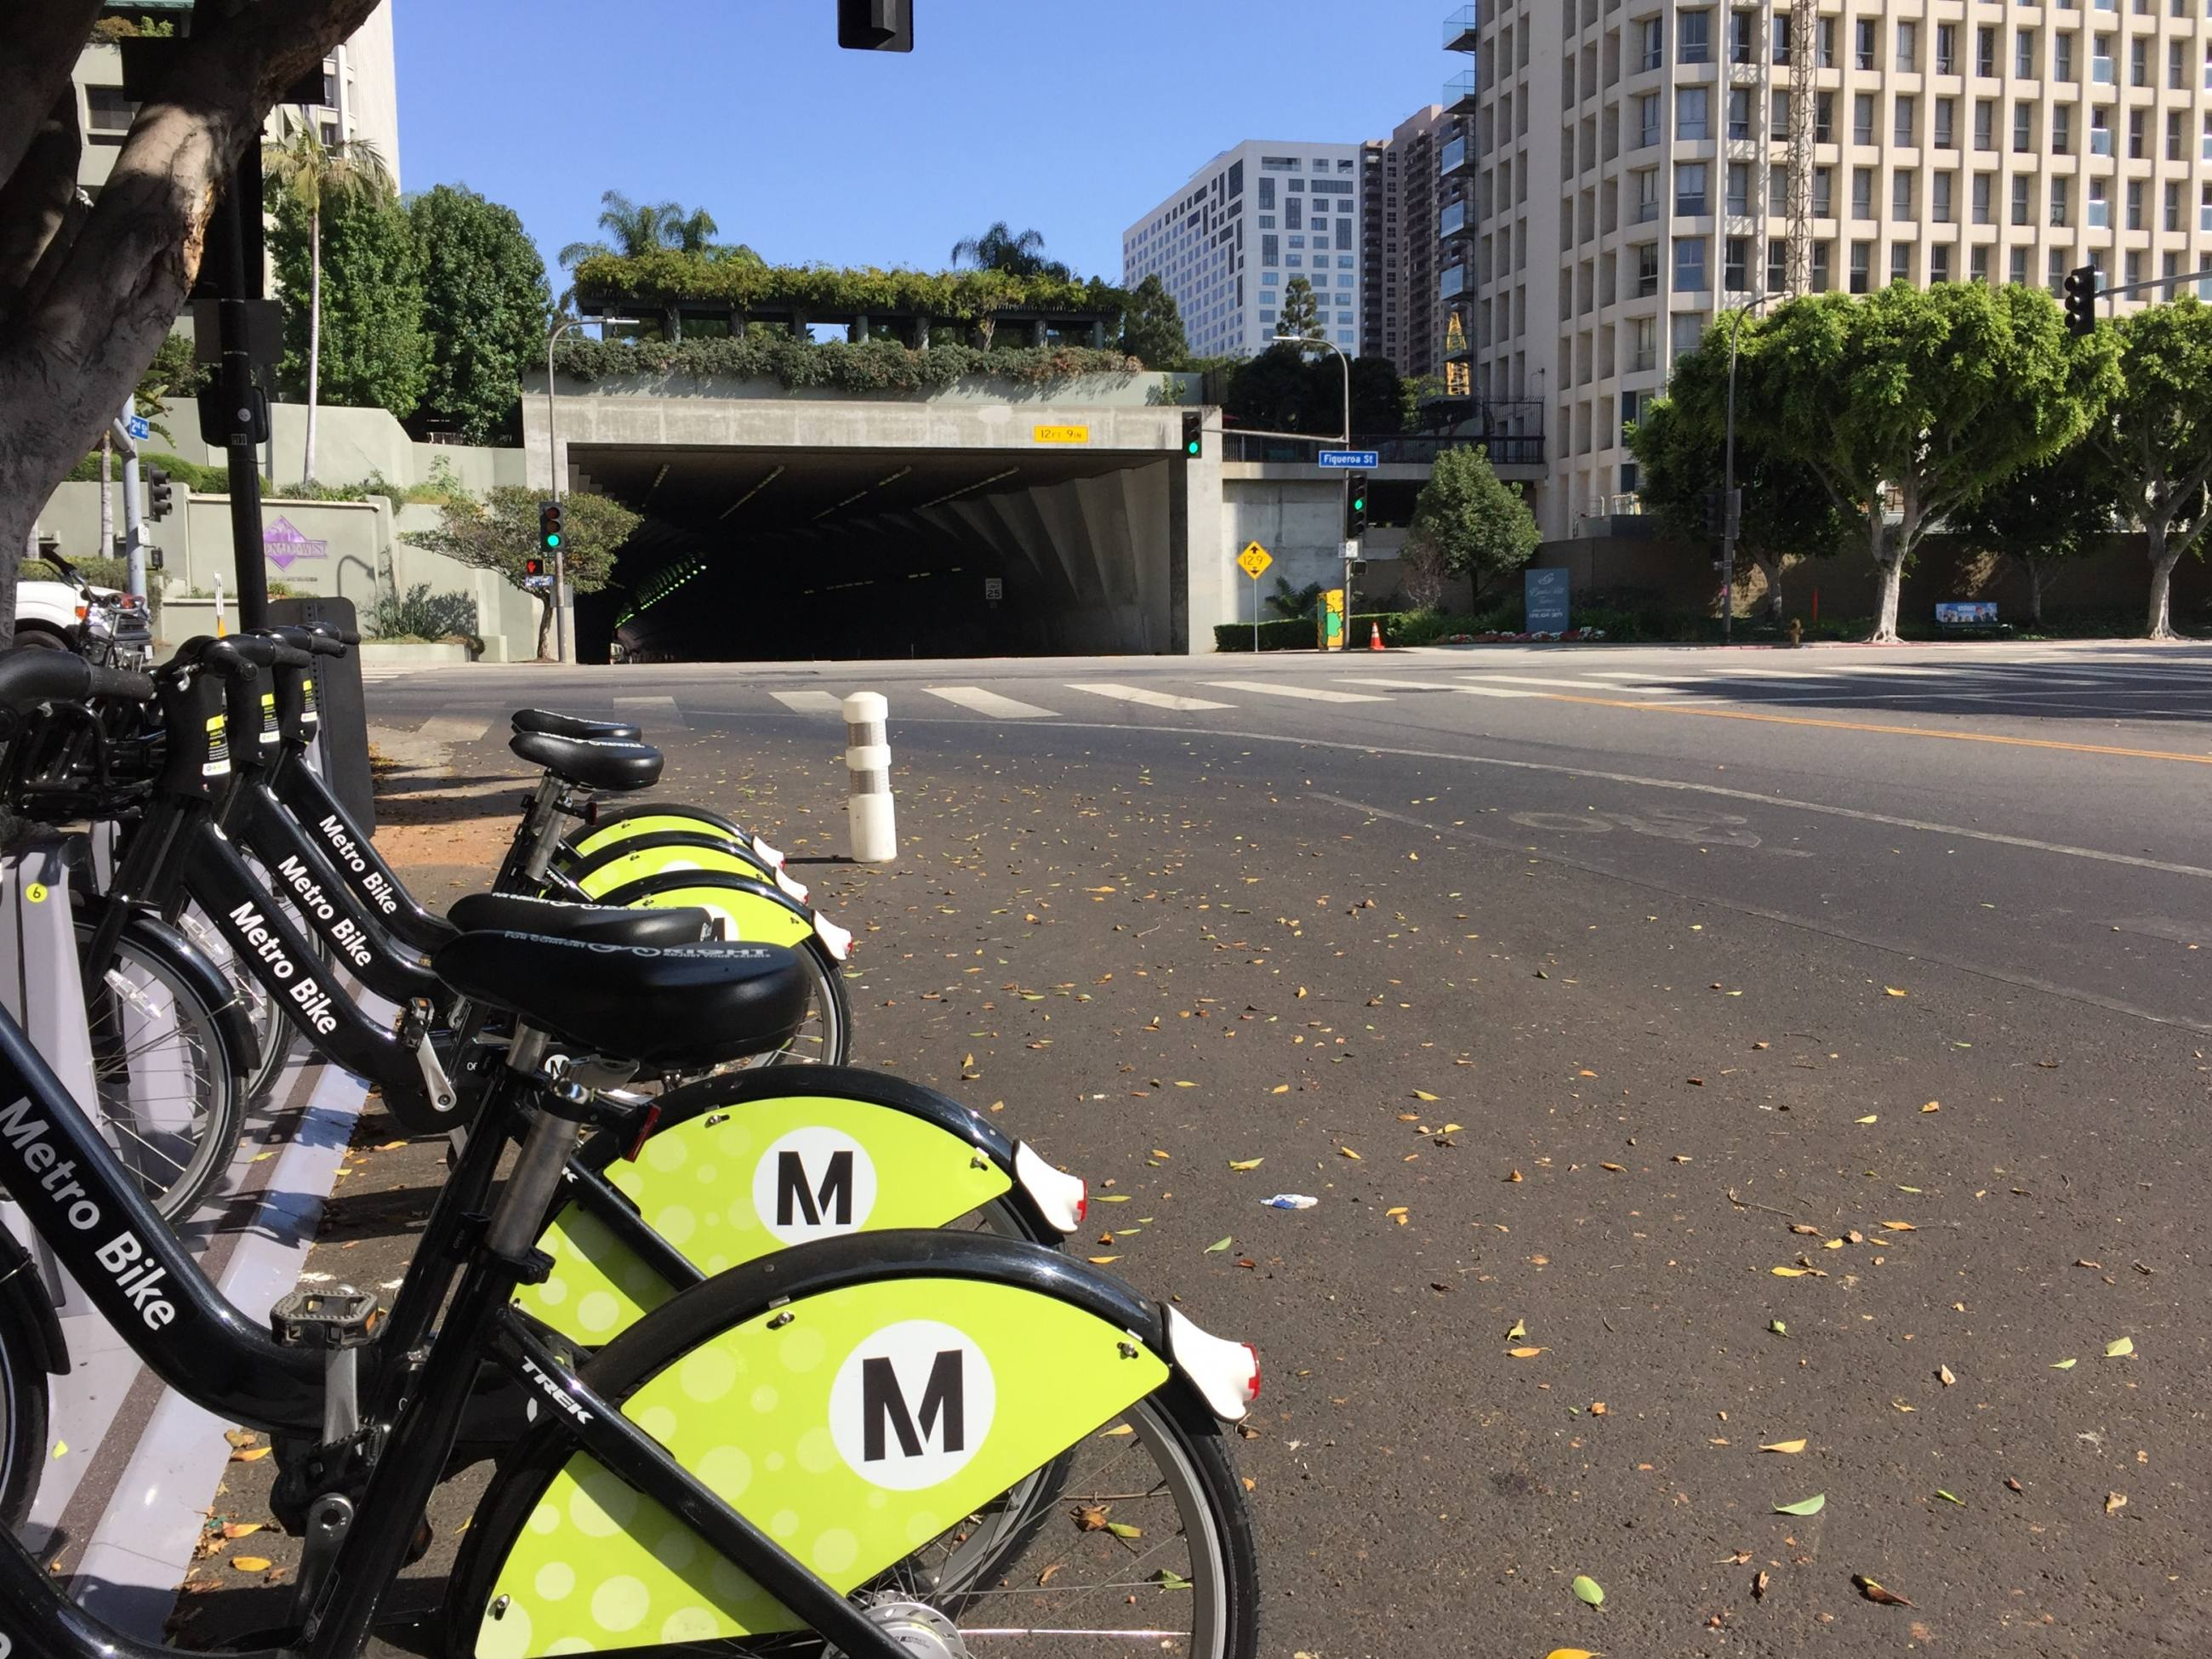 Metro Bike Share Station at 2nd Street & Figueroa